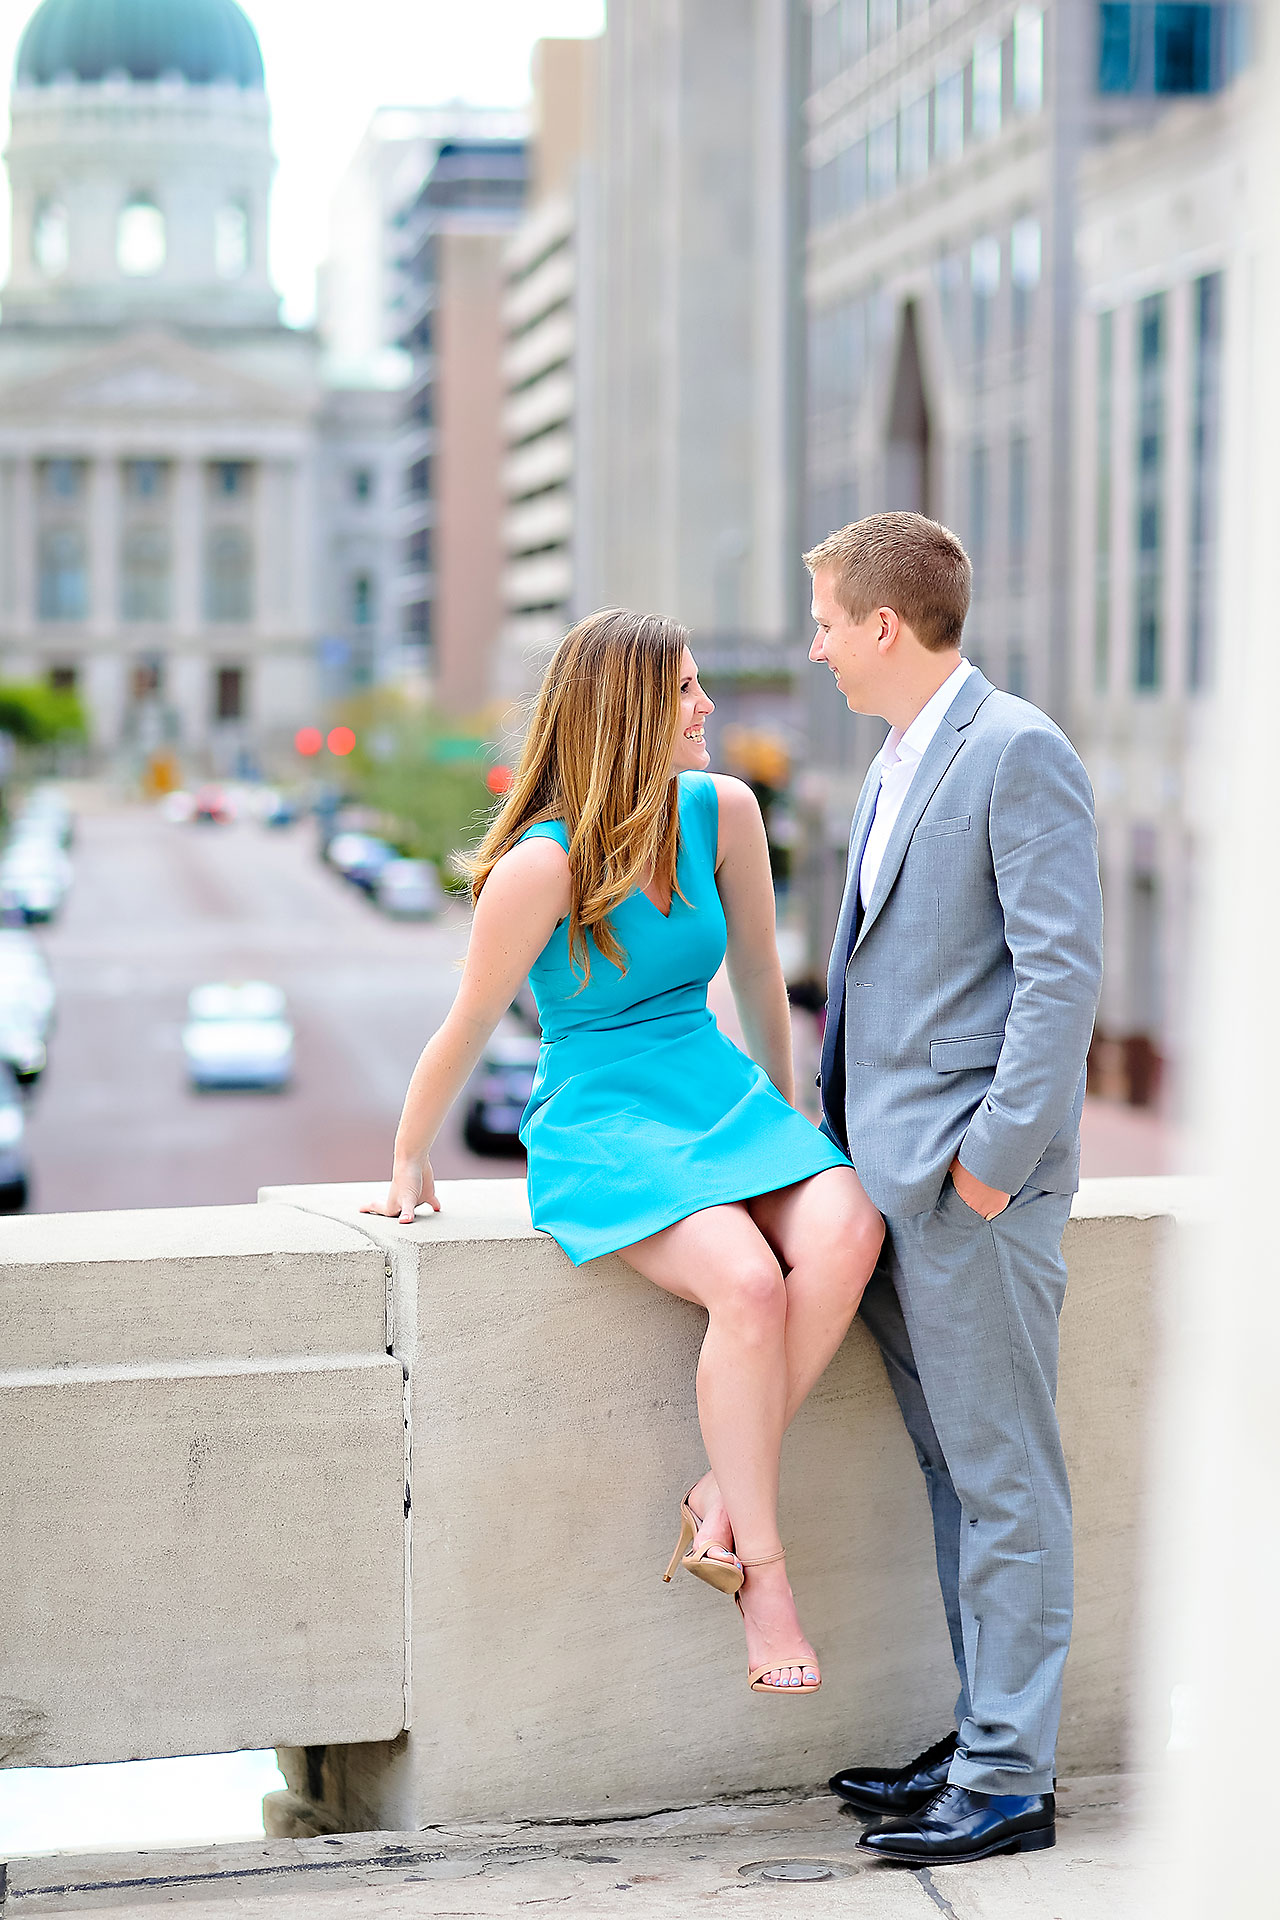 Chelsea Jeff Downtown Indy Engagement Session 039